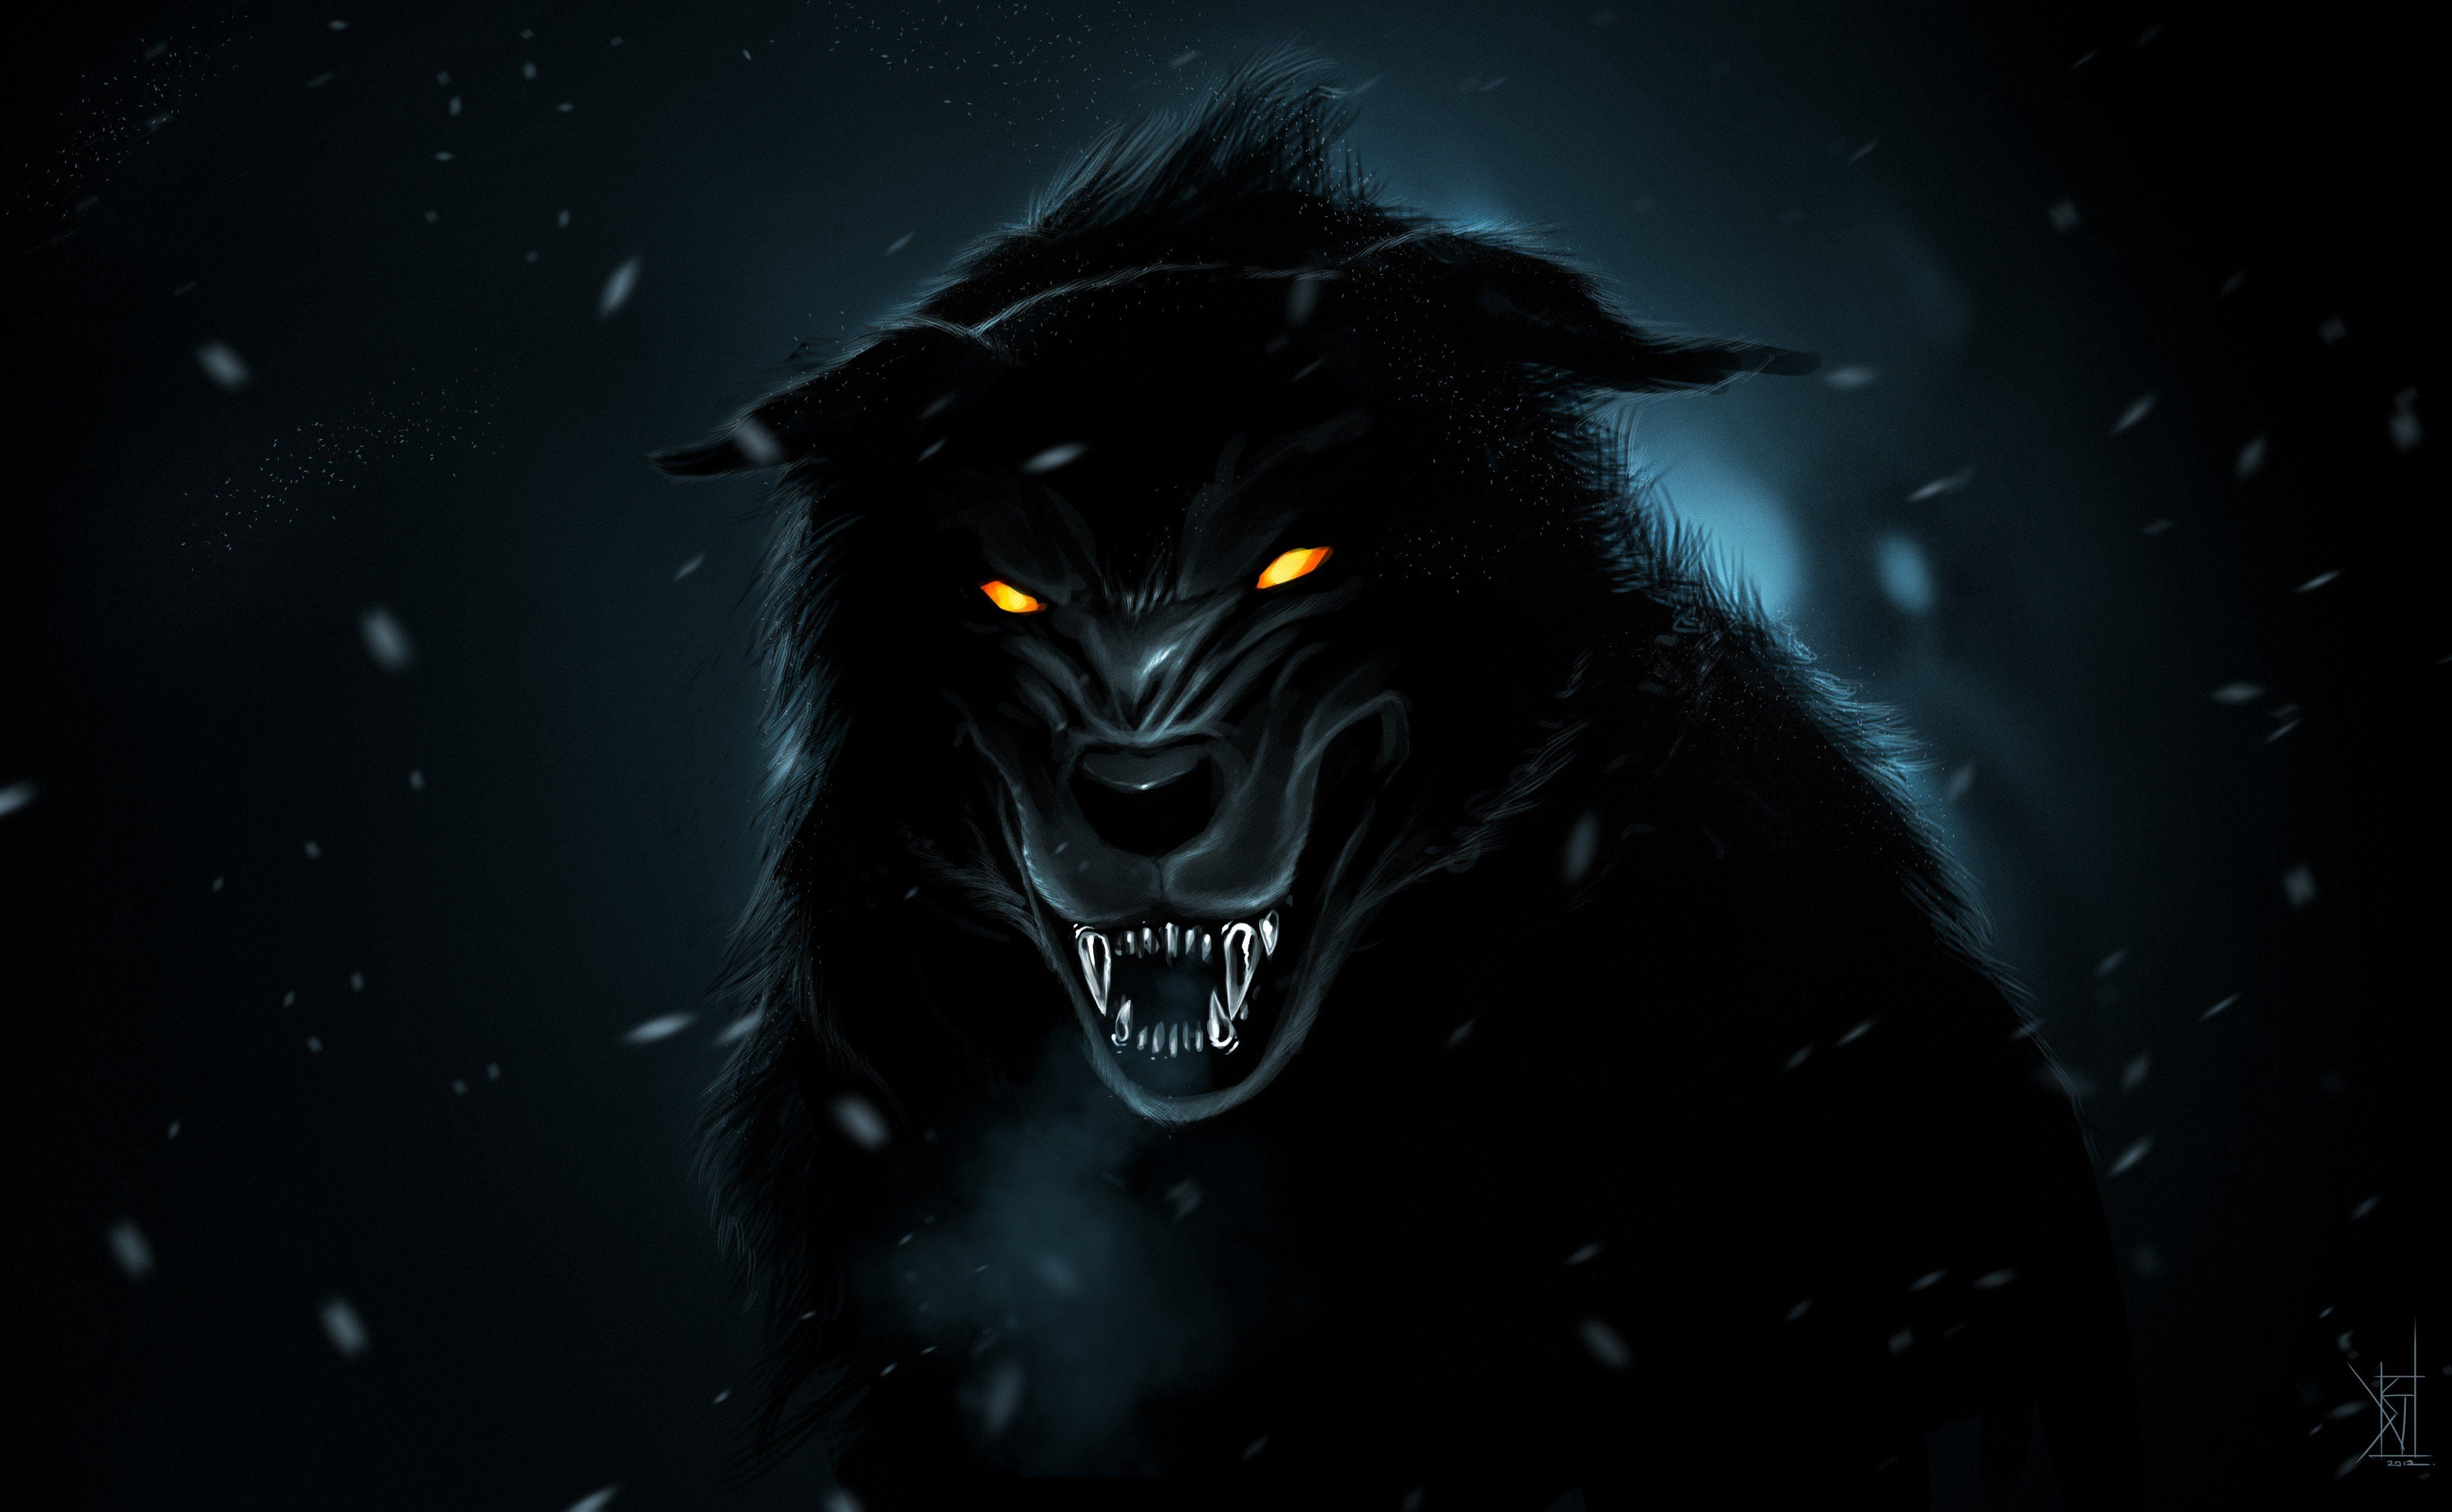 Download Hd Wallpapers Of 408864 Orange Eyes Wolf Free Download High Quality And Widescreen Resolutions Desktop Backgro Black Wolf Shadow Wolf Wolf Wallpaper